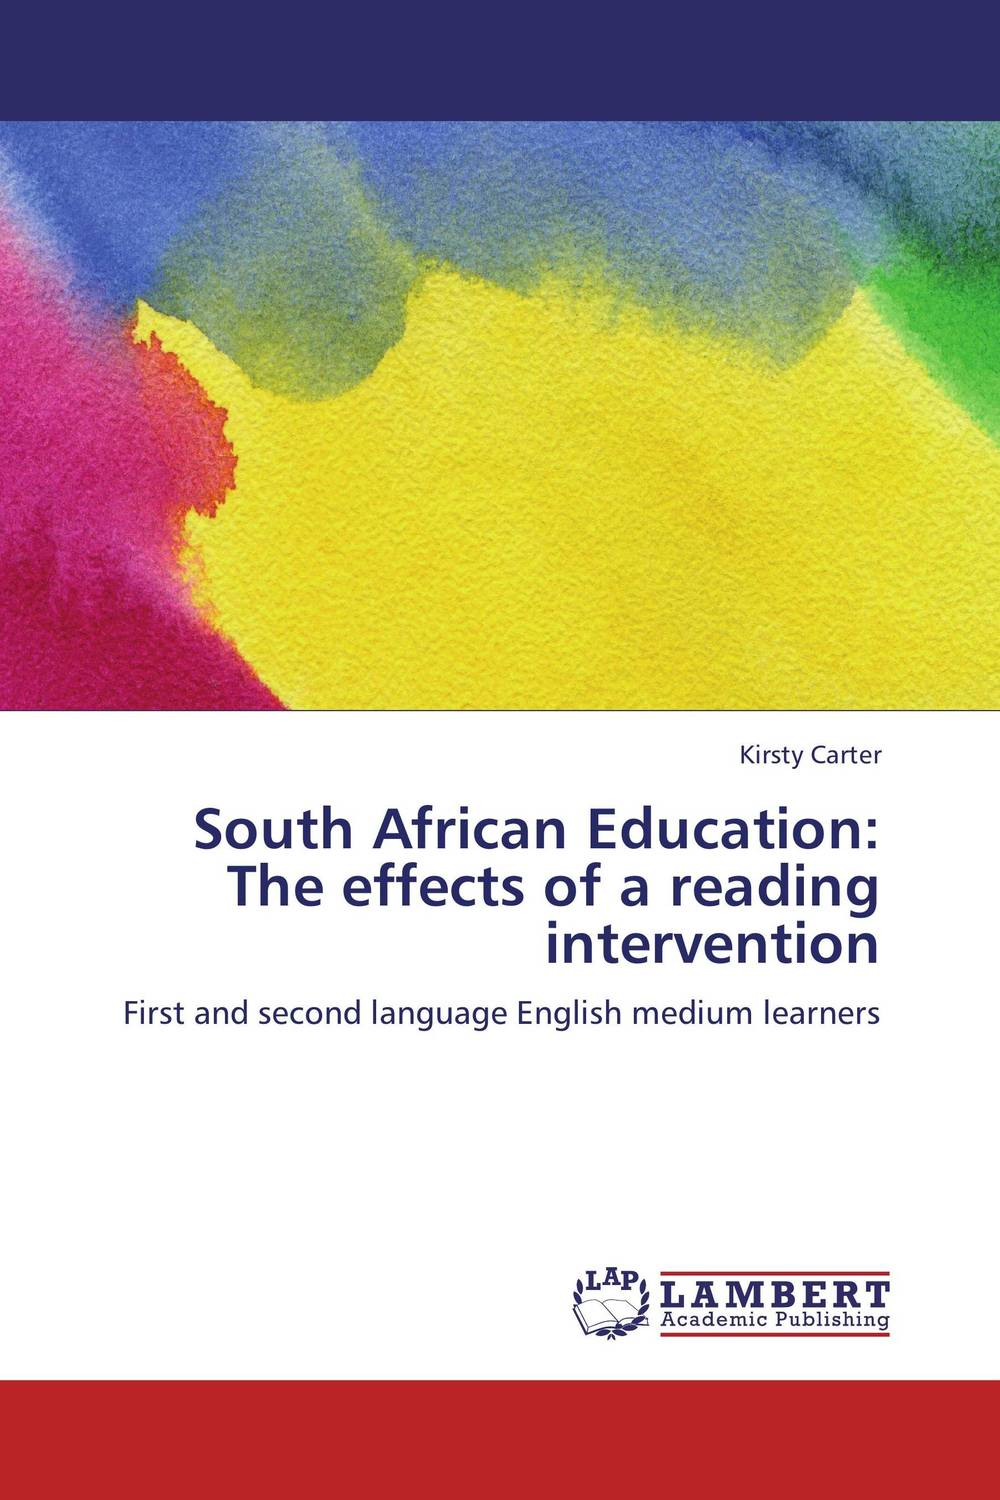 South African Education: The effects of a reading intervention косметичка south africa airlines south african airways south african airways